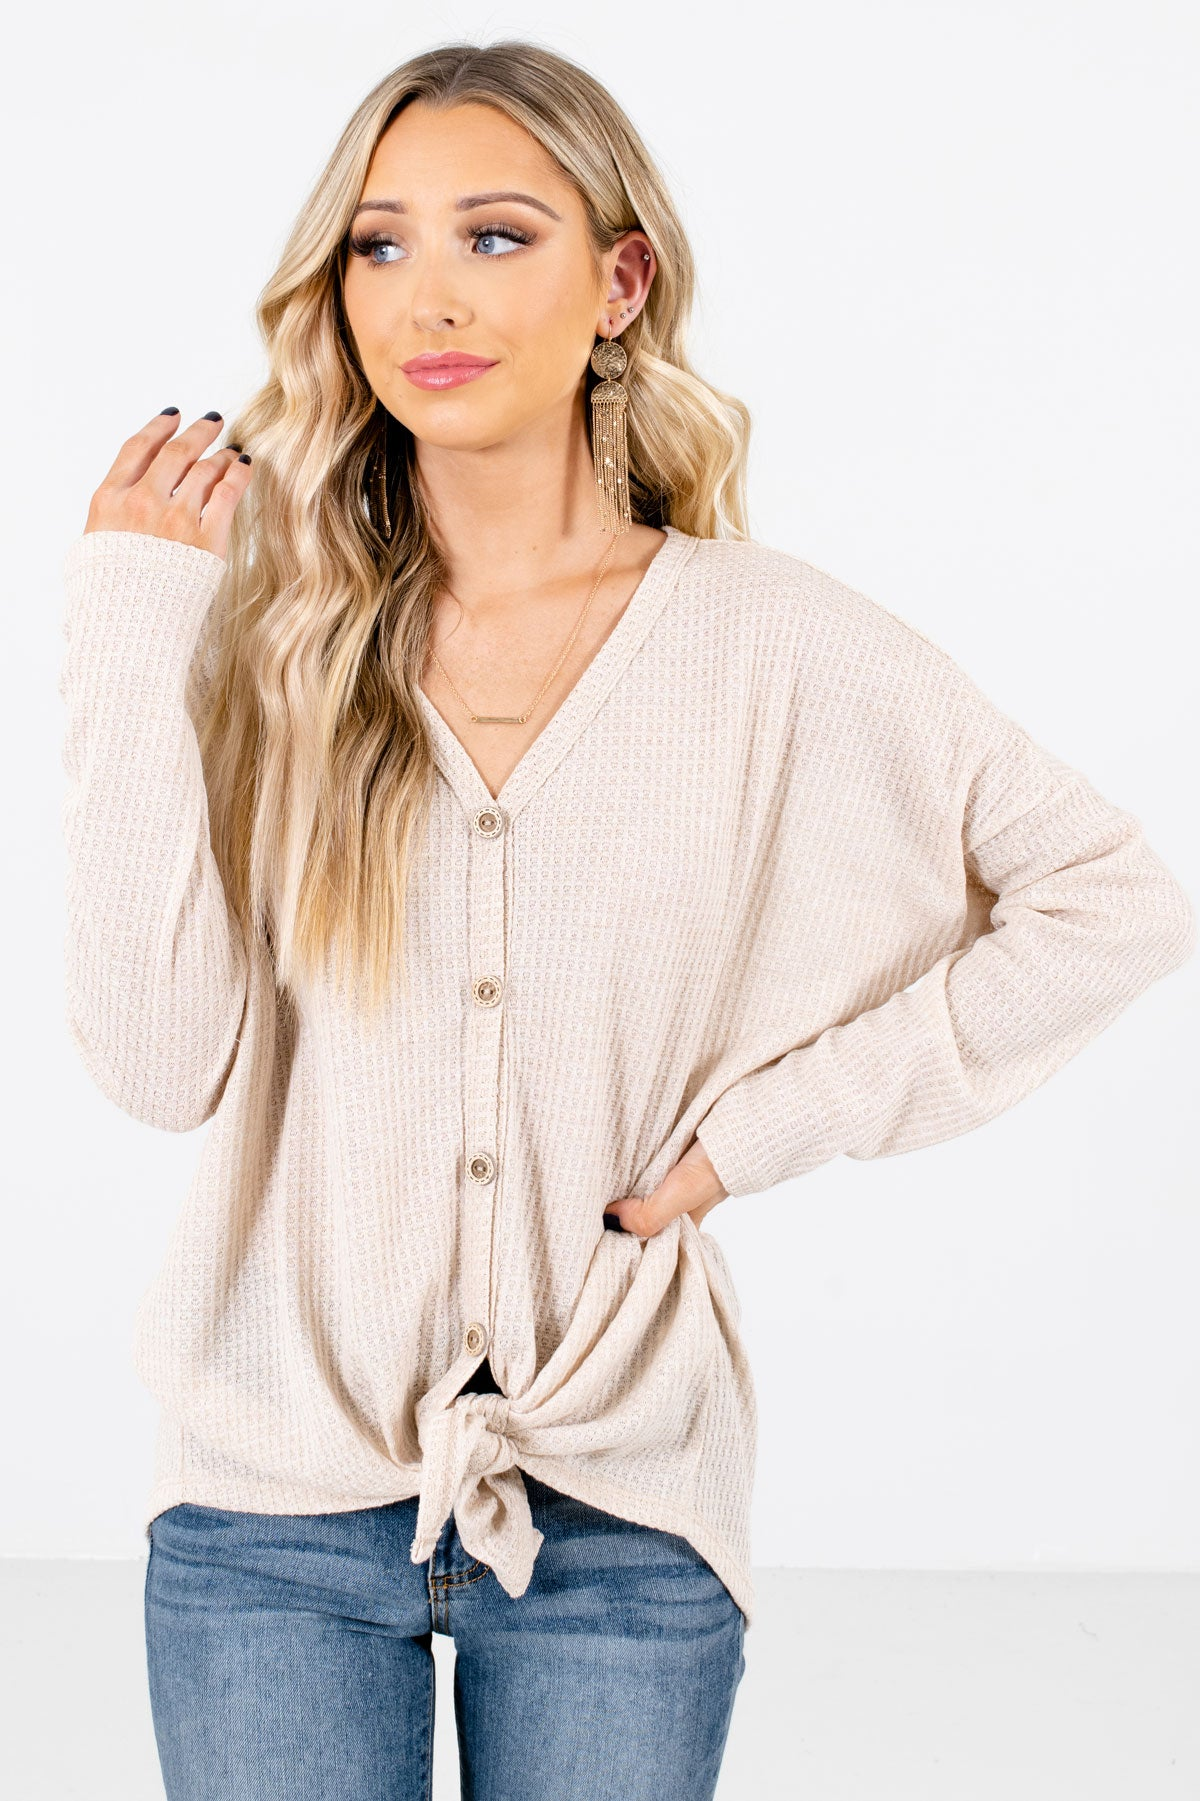 Beige Button-Up Front Boutique Tops for Women